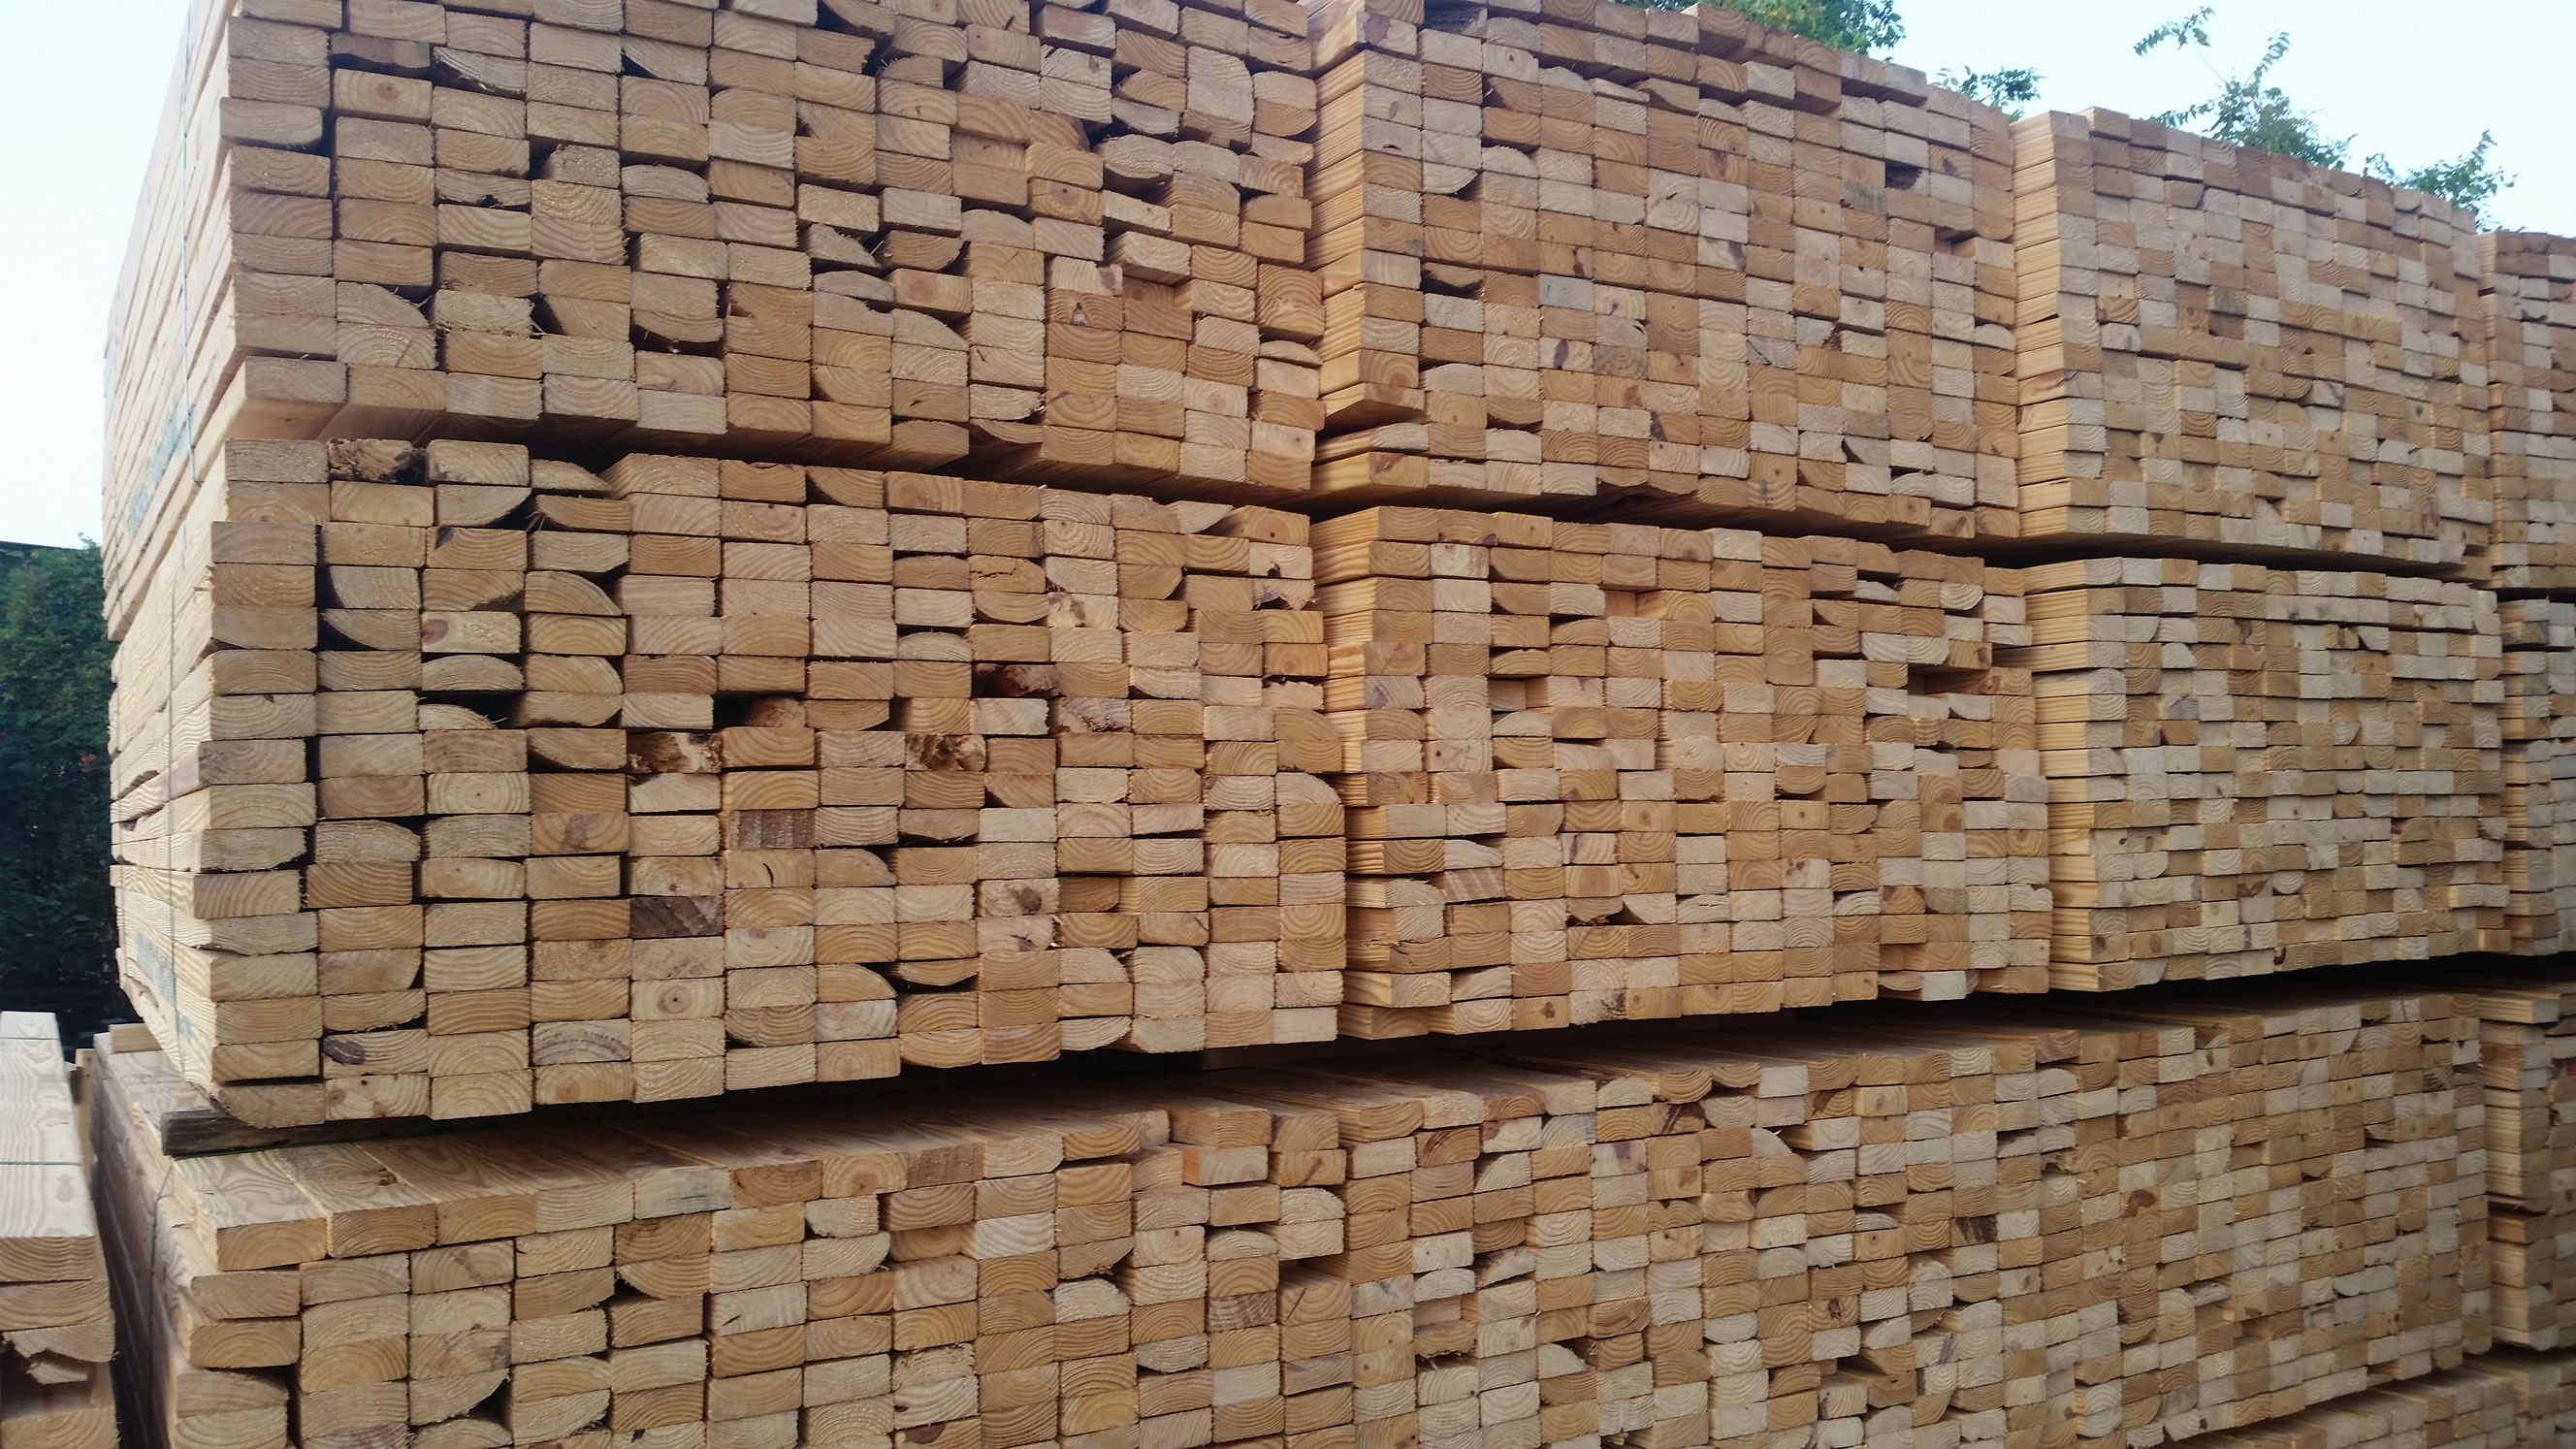 From Purple Poplar to Thermally Modified Lumber, End Trims to Remnants, Check this page to find out what's available. Unique, Closeout, and One time deals available - High quality lumber provided to you at an affordable price. Over 20 different species.